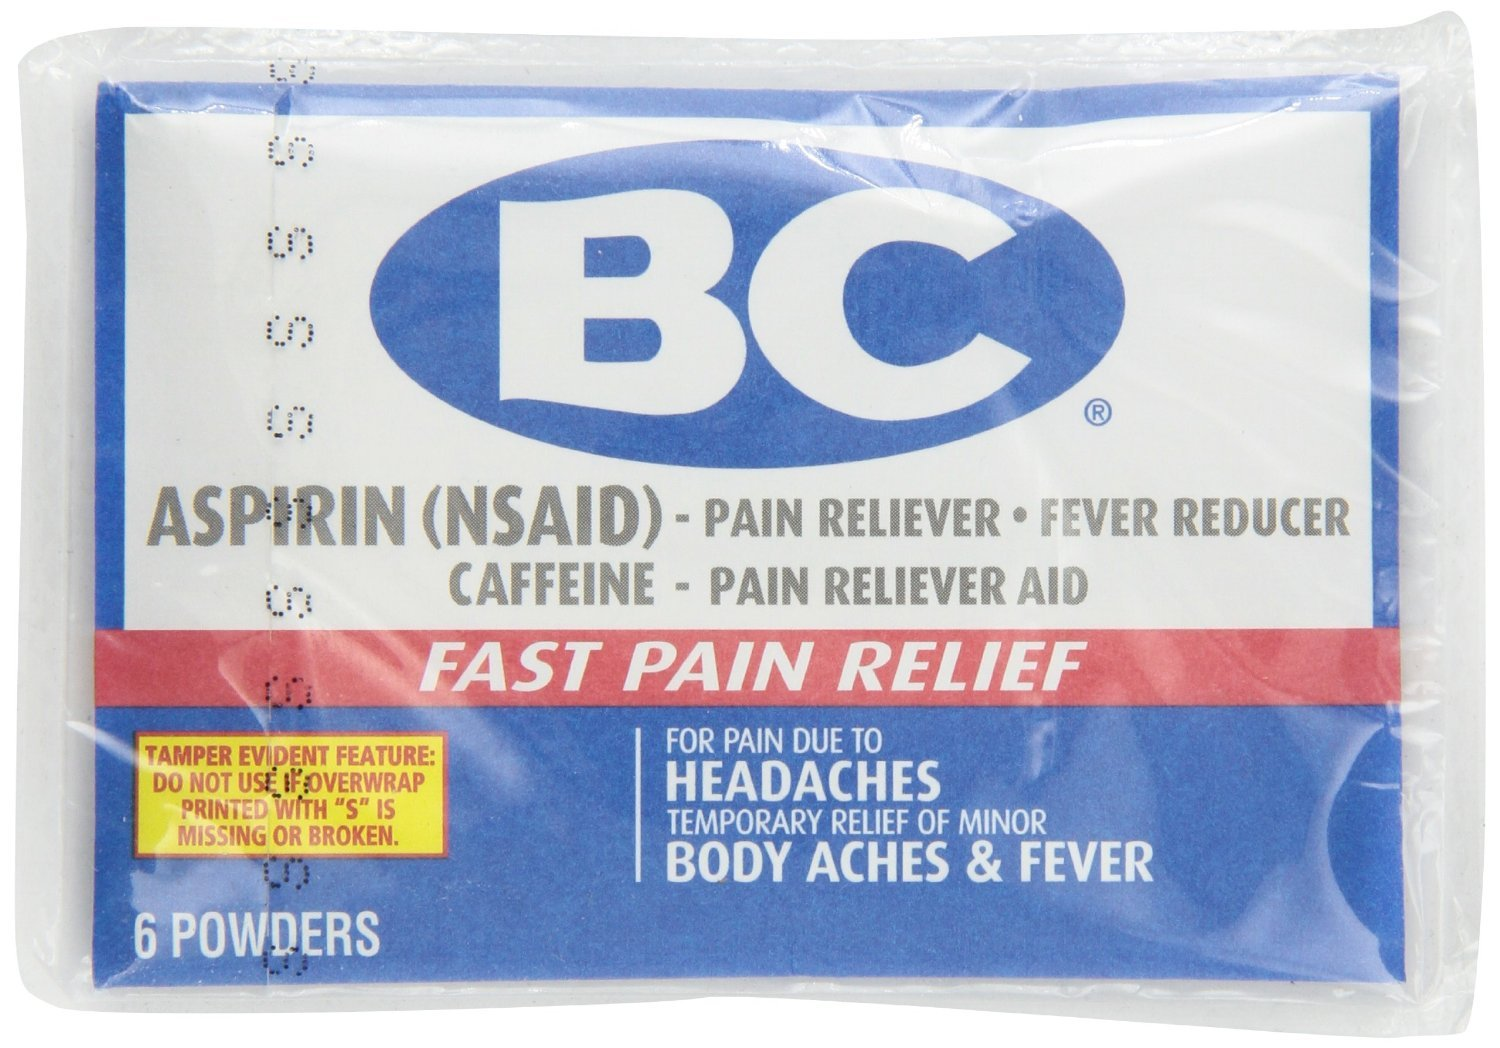 BC Aspirin Powder Headaches Body Aches & Fever 6 Count x 24 Packs by BC